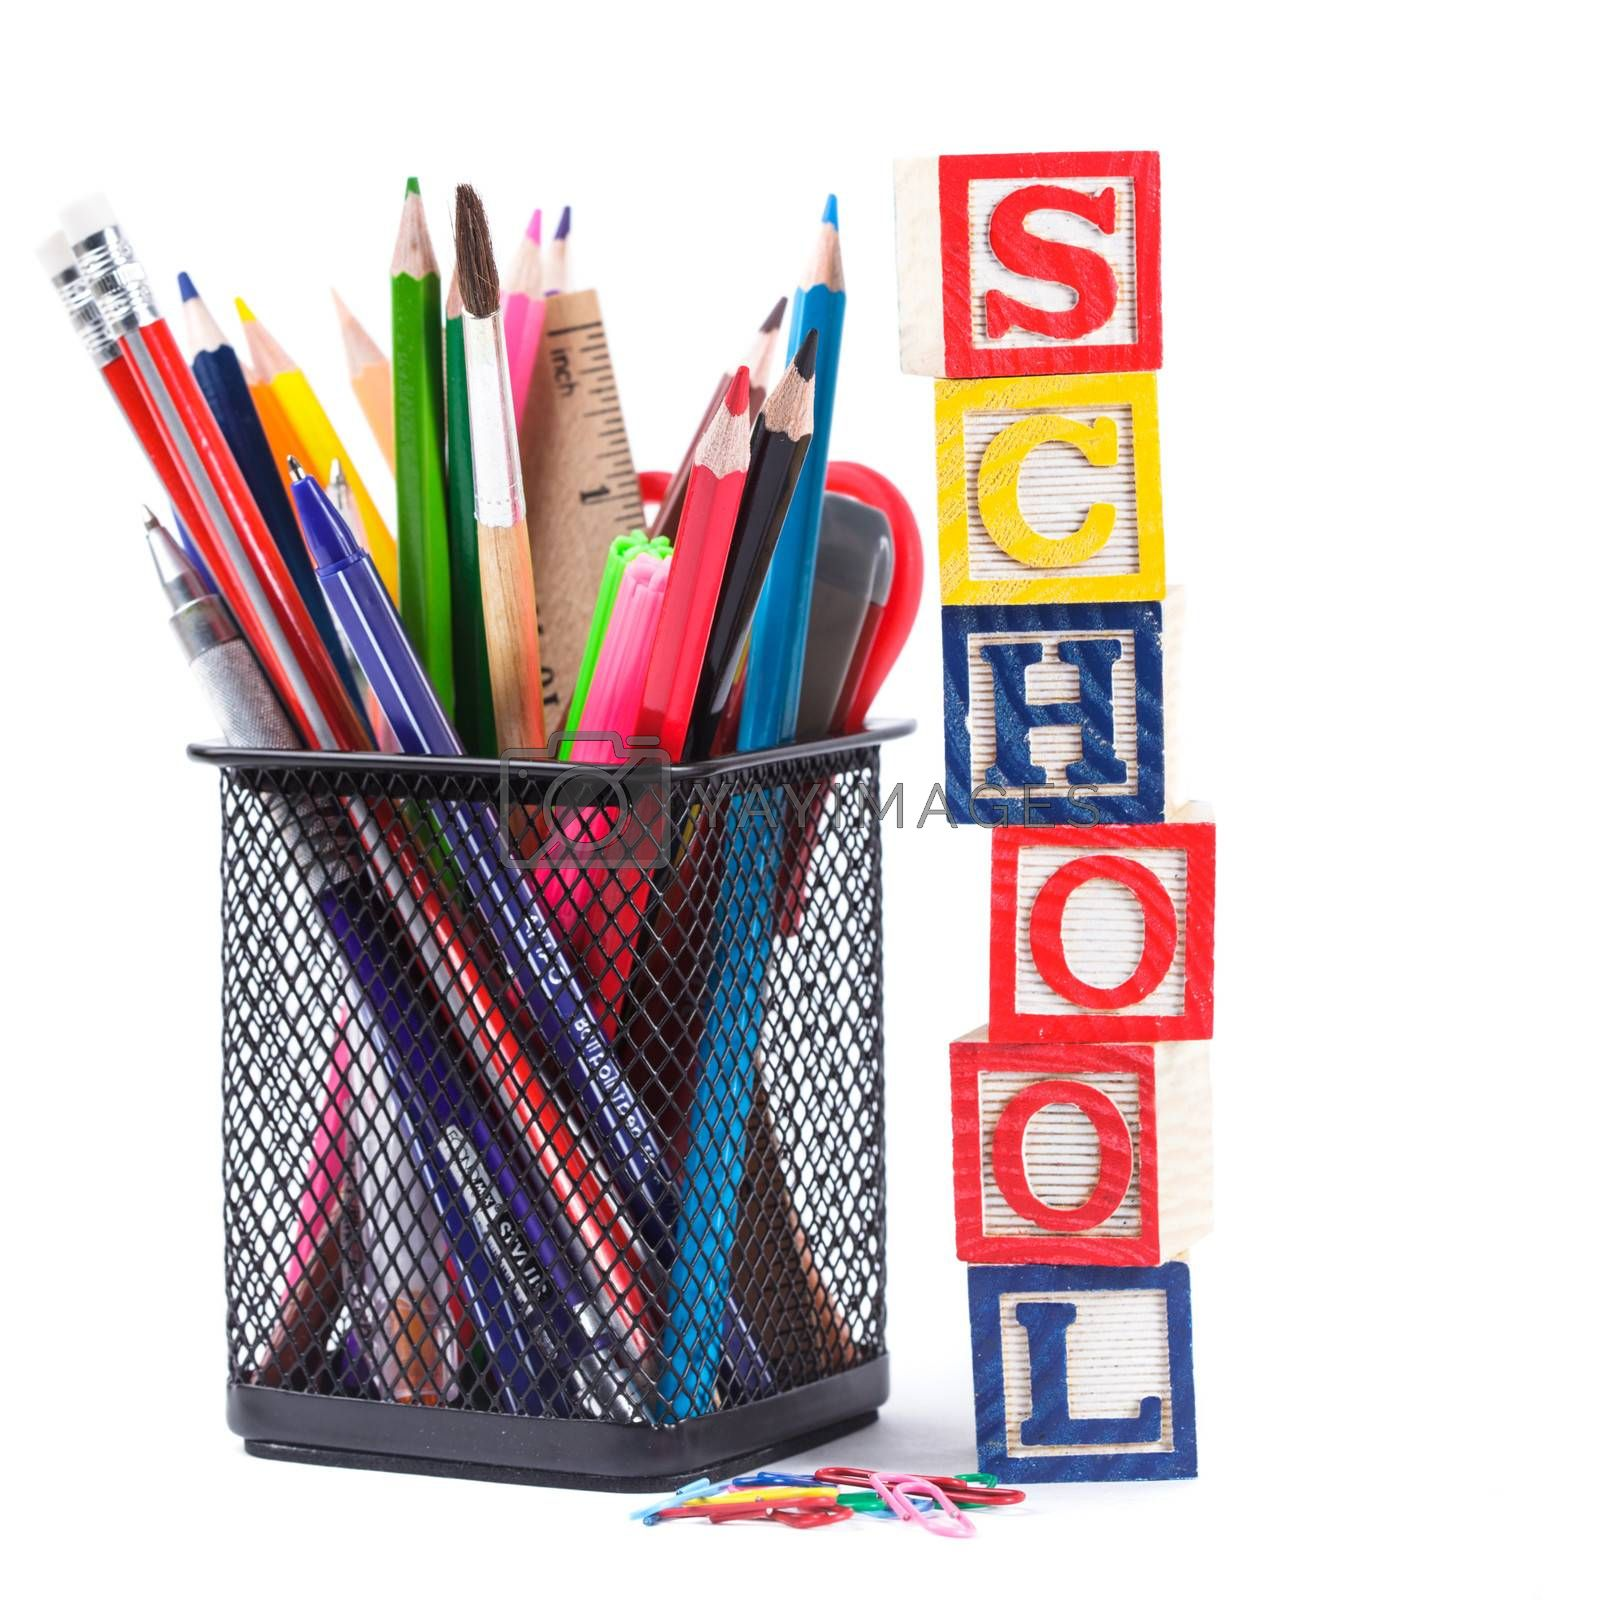 Black pencil cup with stationary for school